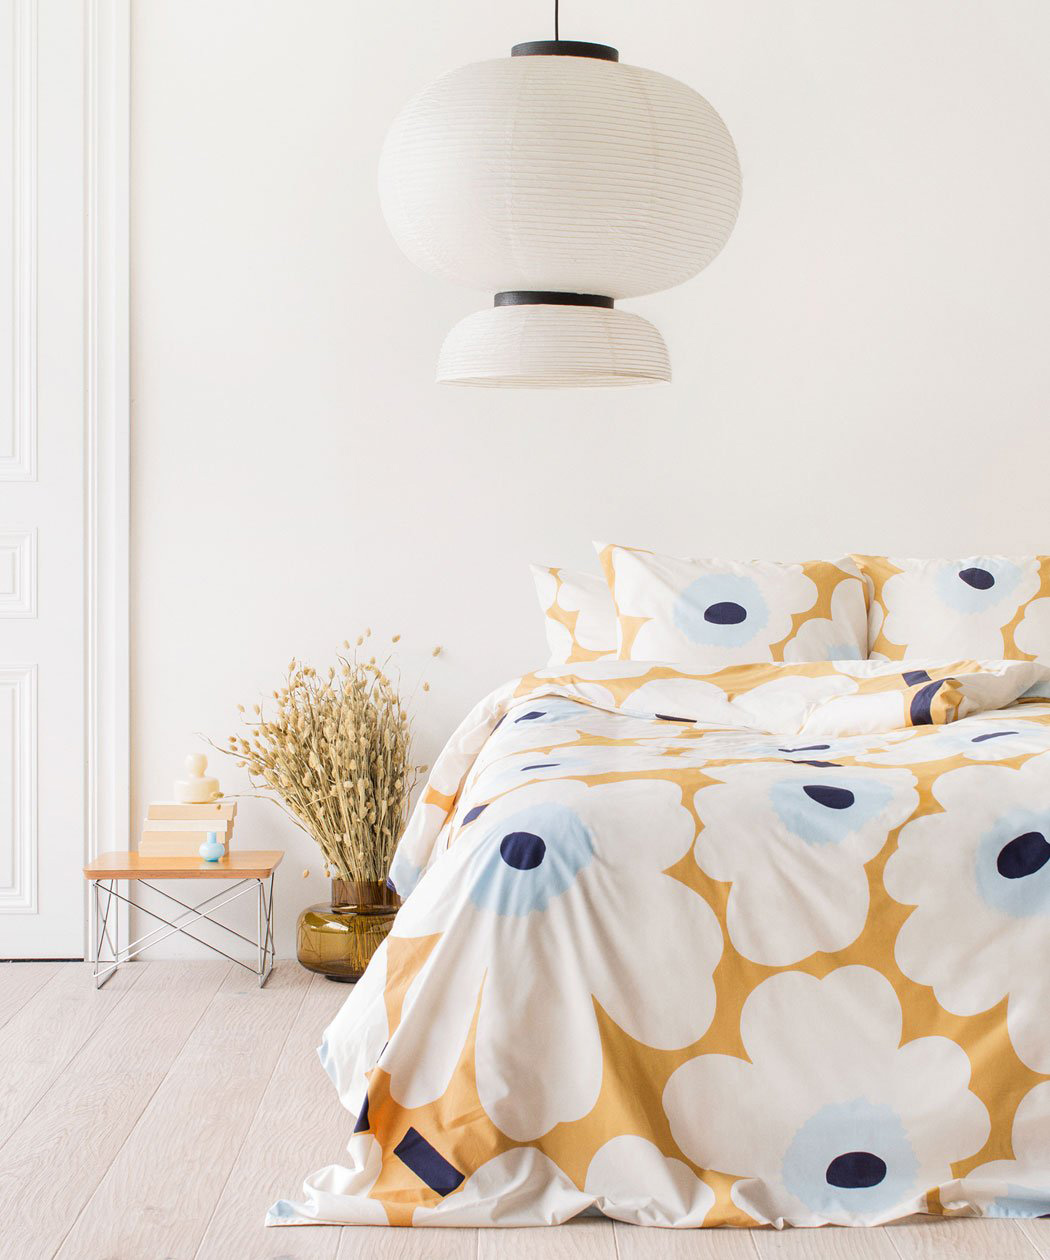 Giving Your Bedroom A Scandinavian Makeover: 8 Easy And Affordable Ways To Give Your Home A Makeover To